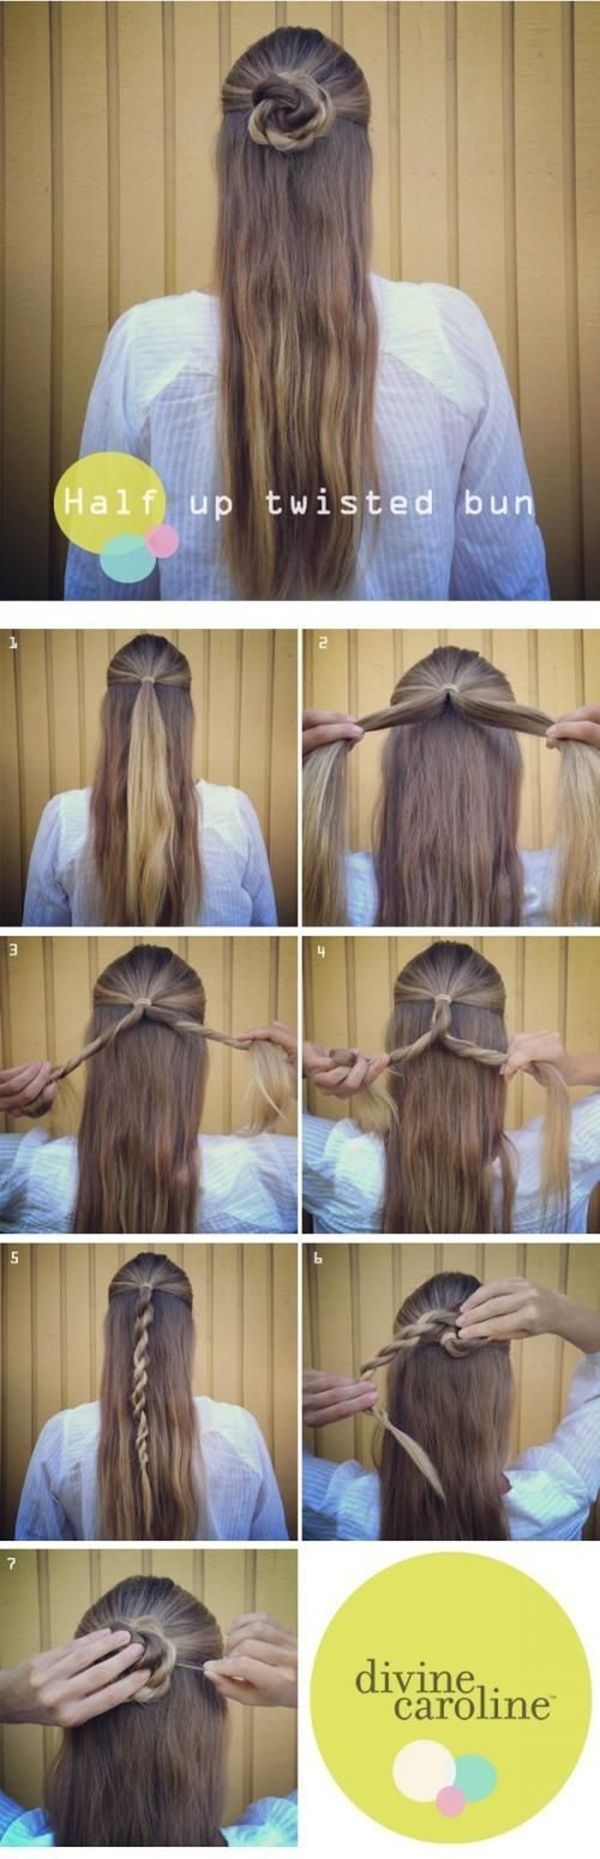 40 Easy Hairstyles for Schools to Try in 2016 | ww…